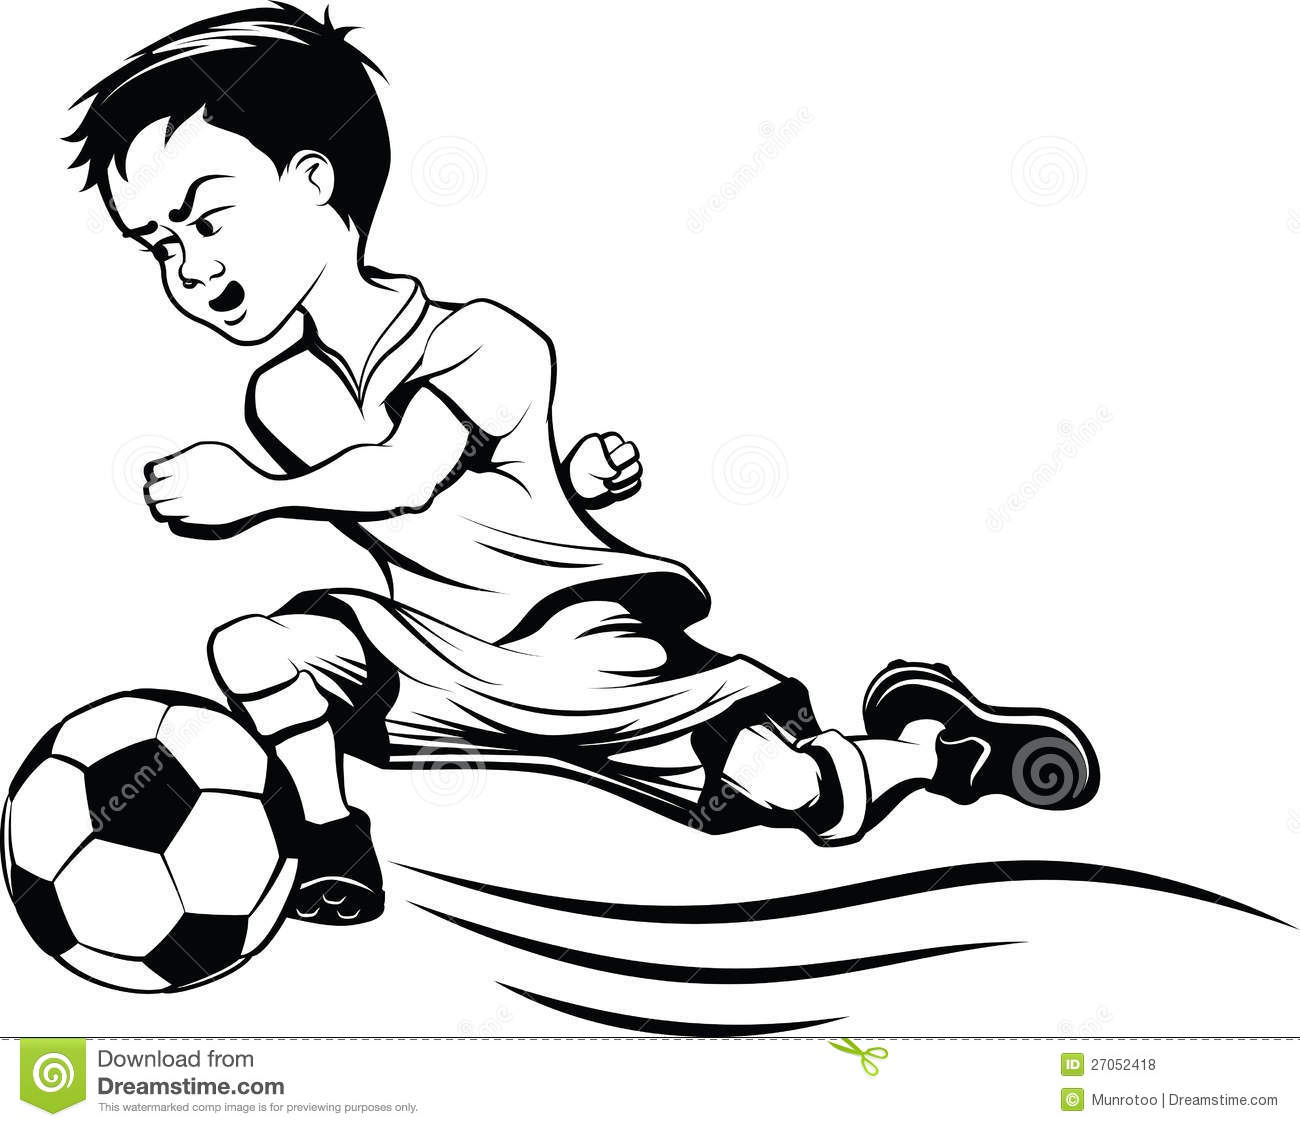 1300x1127 How To Draw Soccer Cartoon Of A Young Man Kicking A Soccer Ball